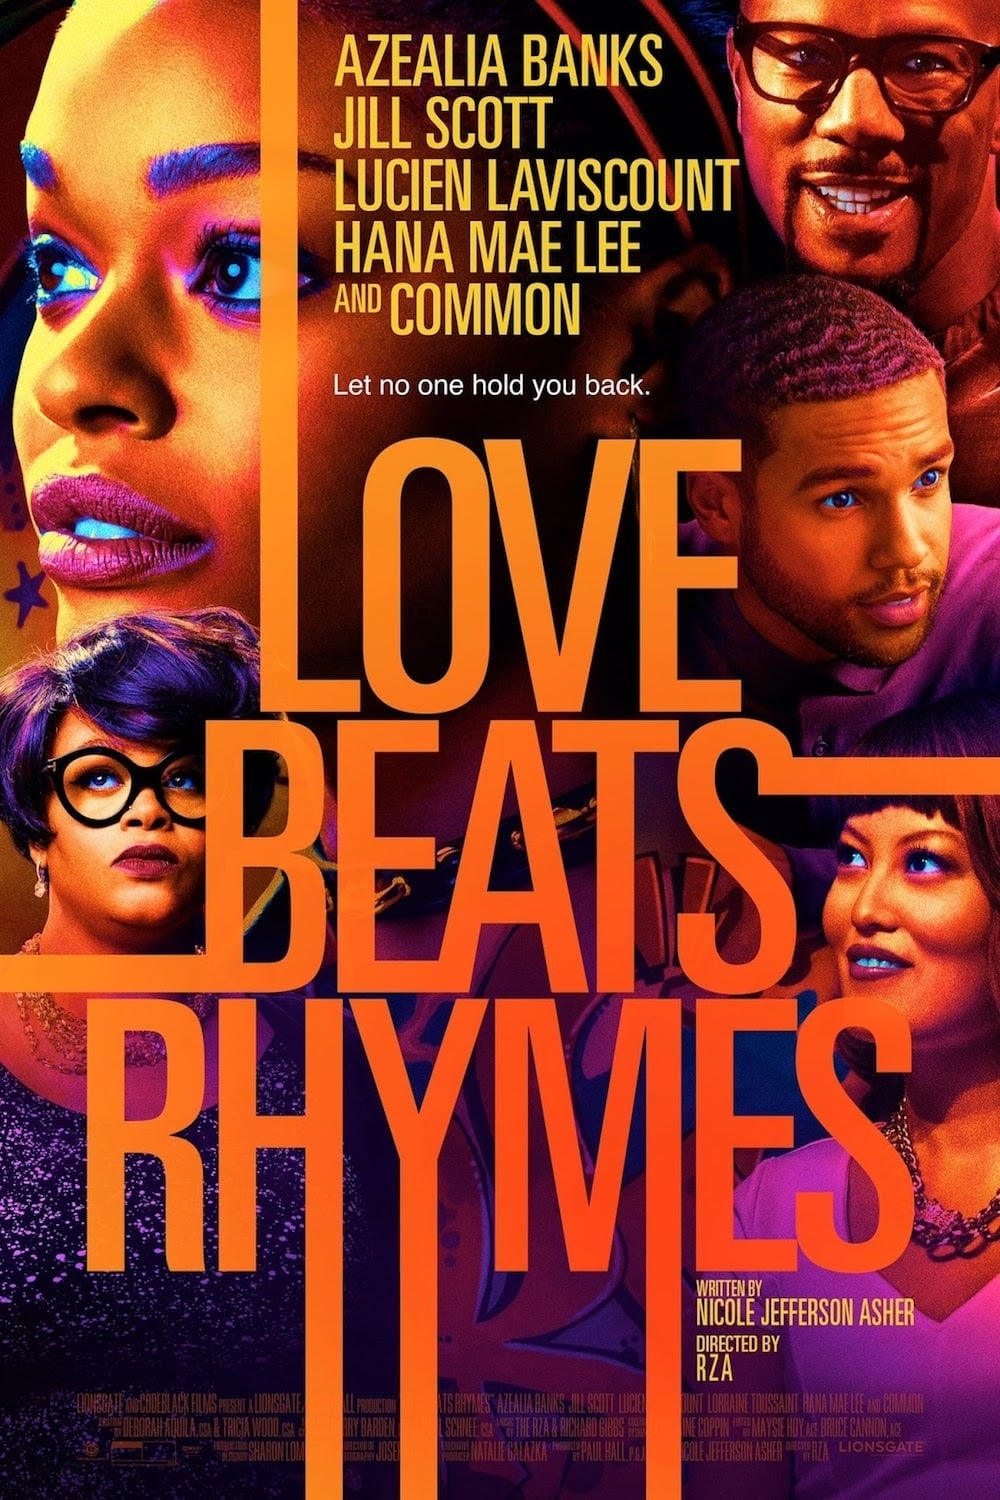 Assistir Love Beats Rhymes Legendado Online Legendado 1080p